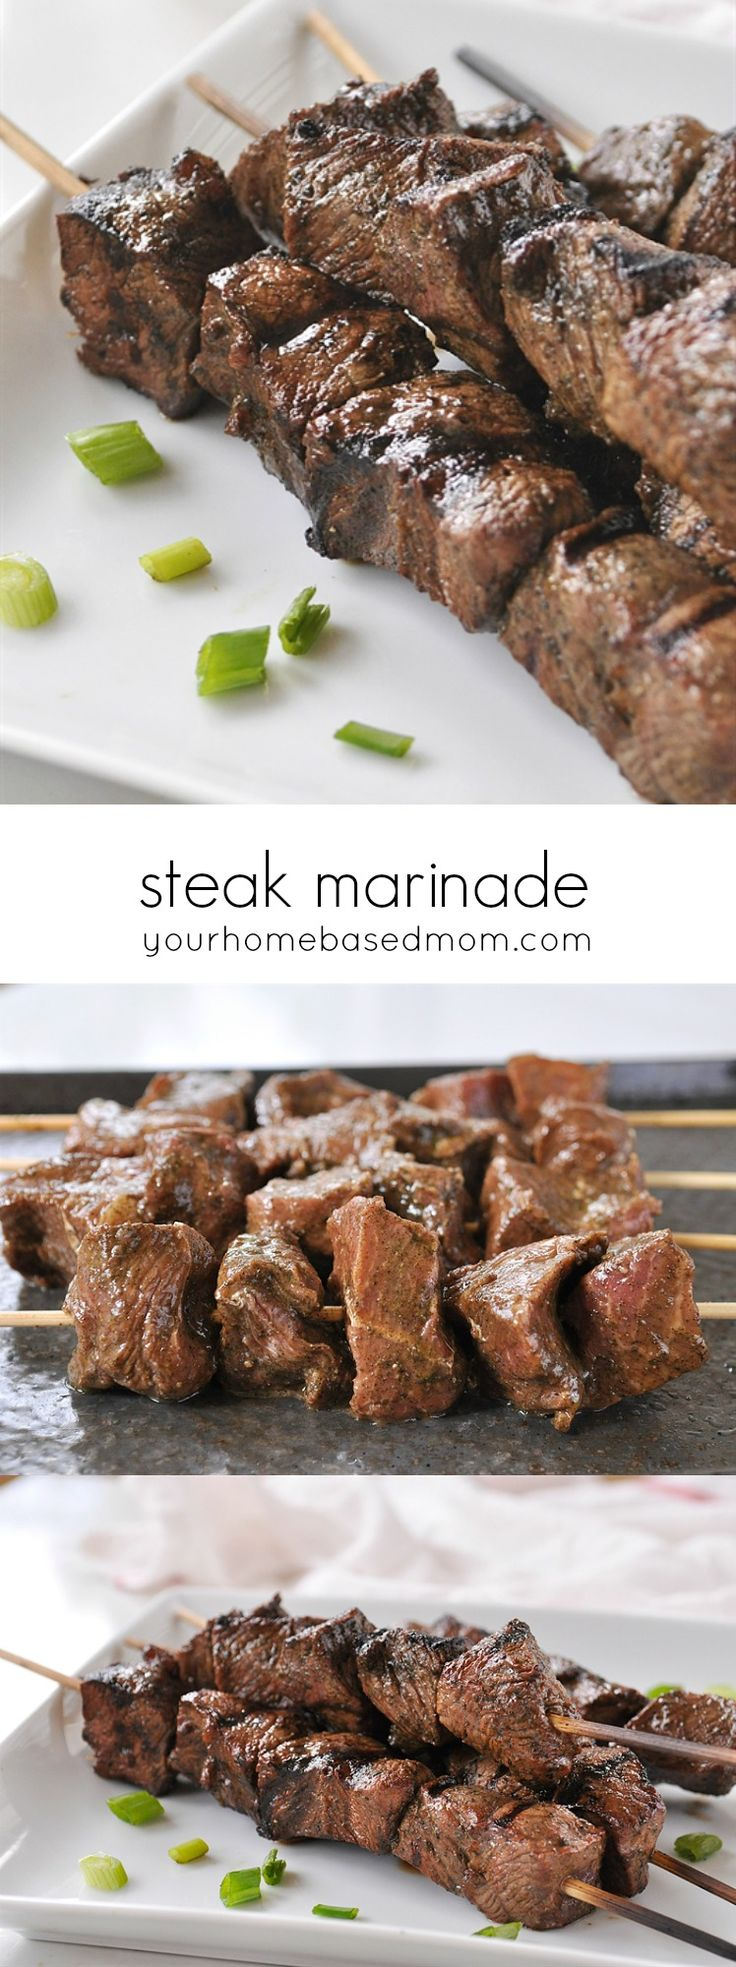 This flavorful steak marinade comes together easily and works perfect on lots of different cuts of meat. Shiskabob is a favorite summer…